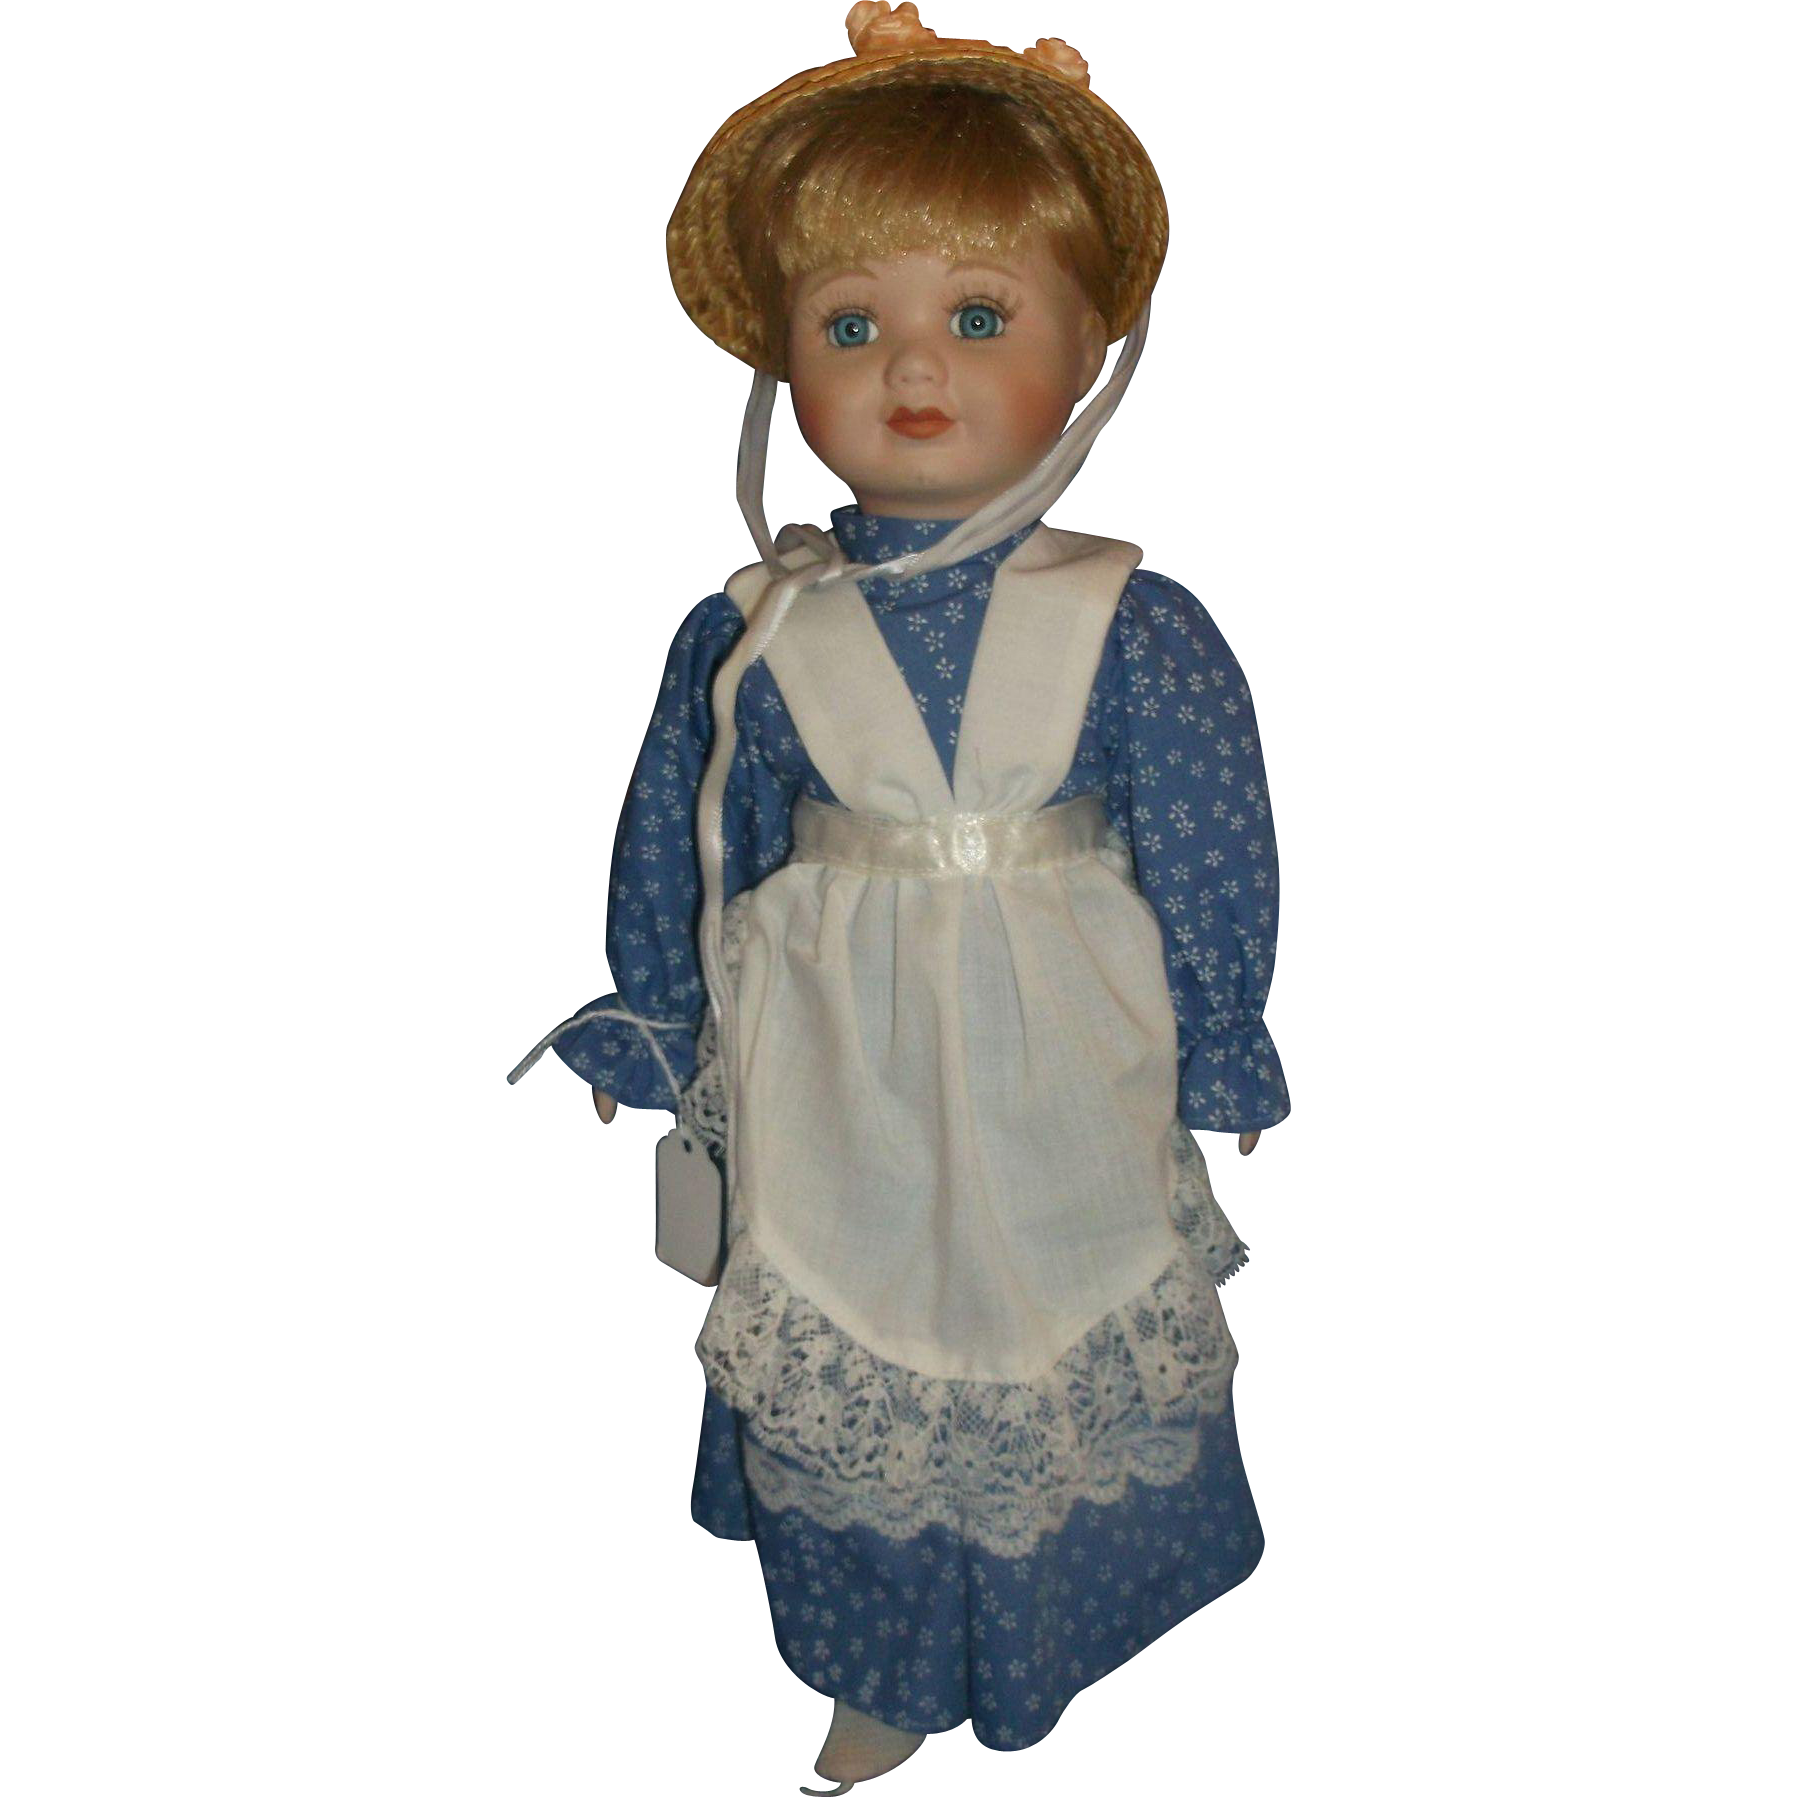 House of Lloyd Private Collection 1994 Porcelain Doll Blonde Hair Straw Bonnet Hat Blue Calico Dress 15 IN